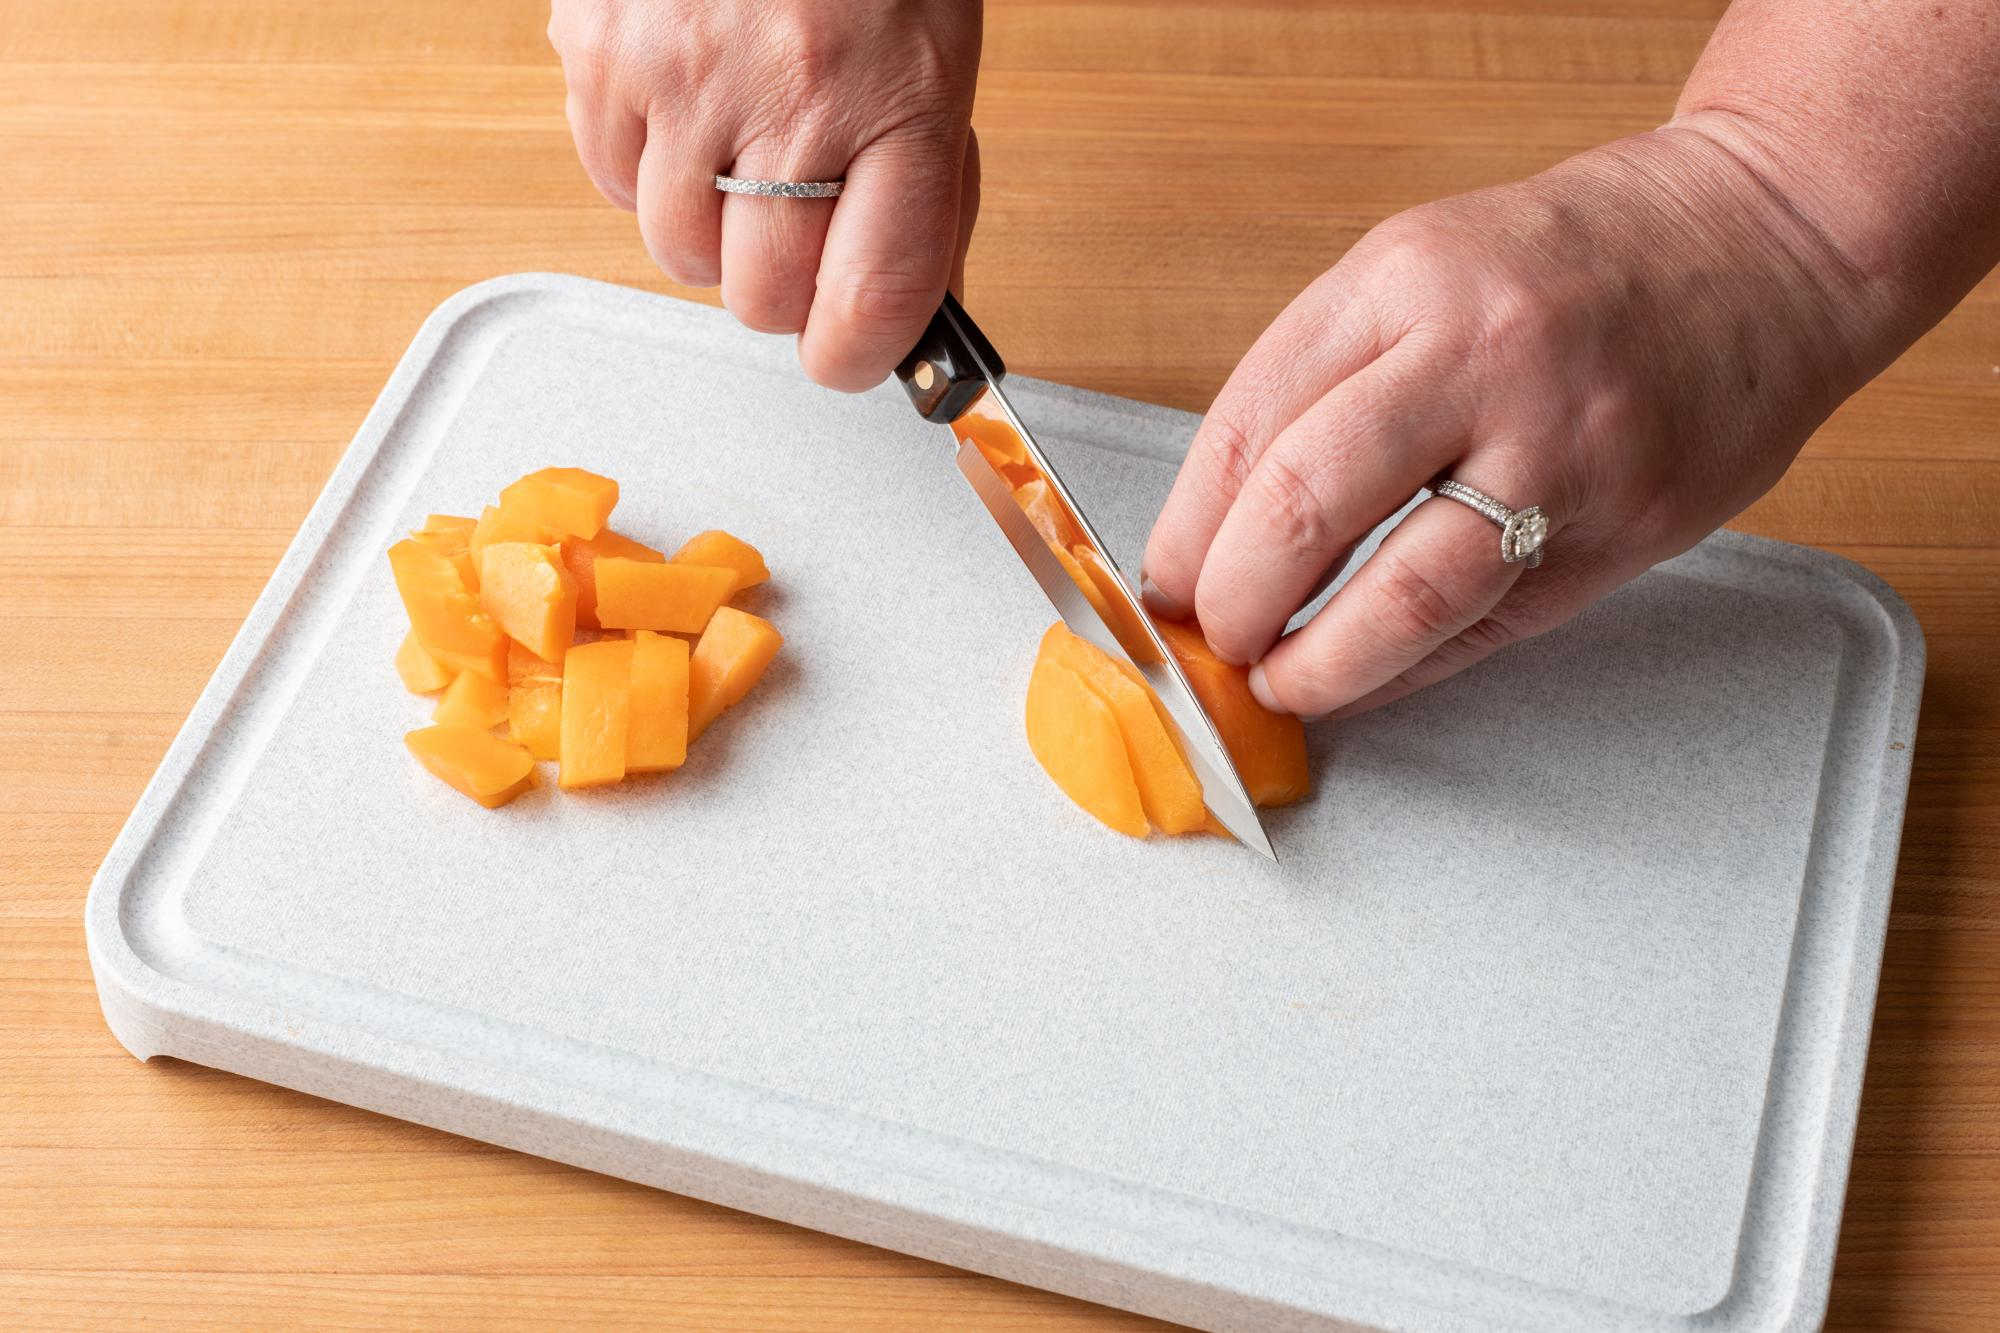 The 4 inch Paring Knife is perfect for dicing the apricots.